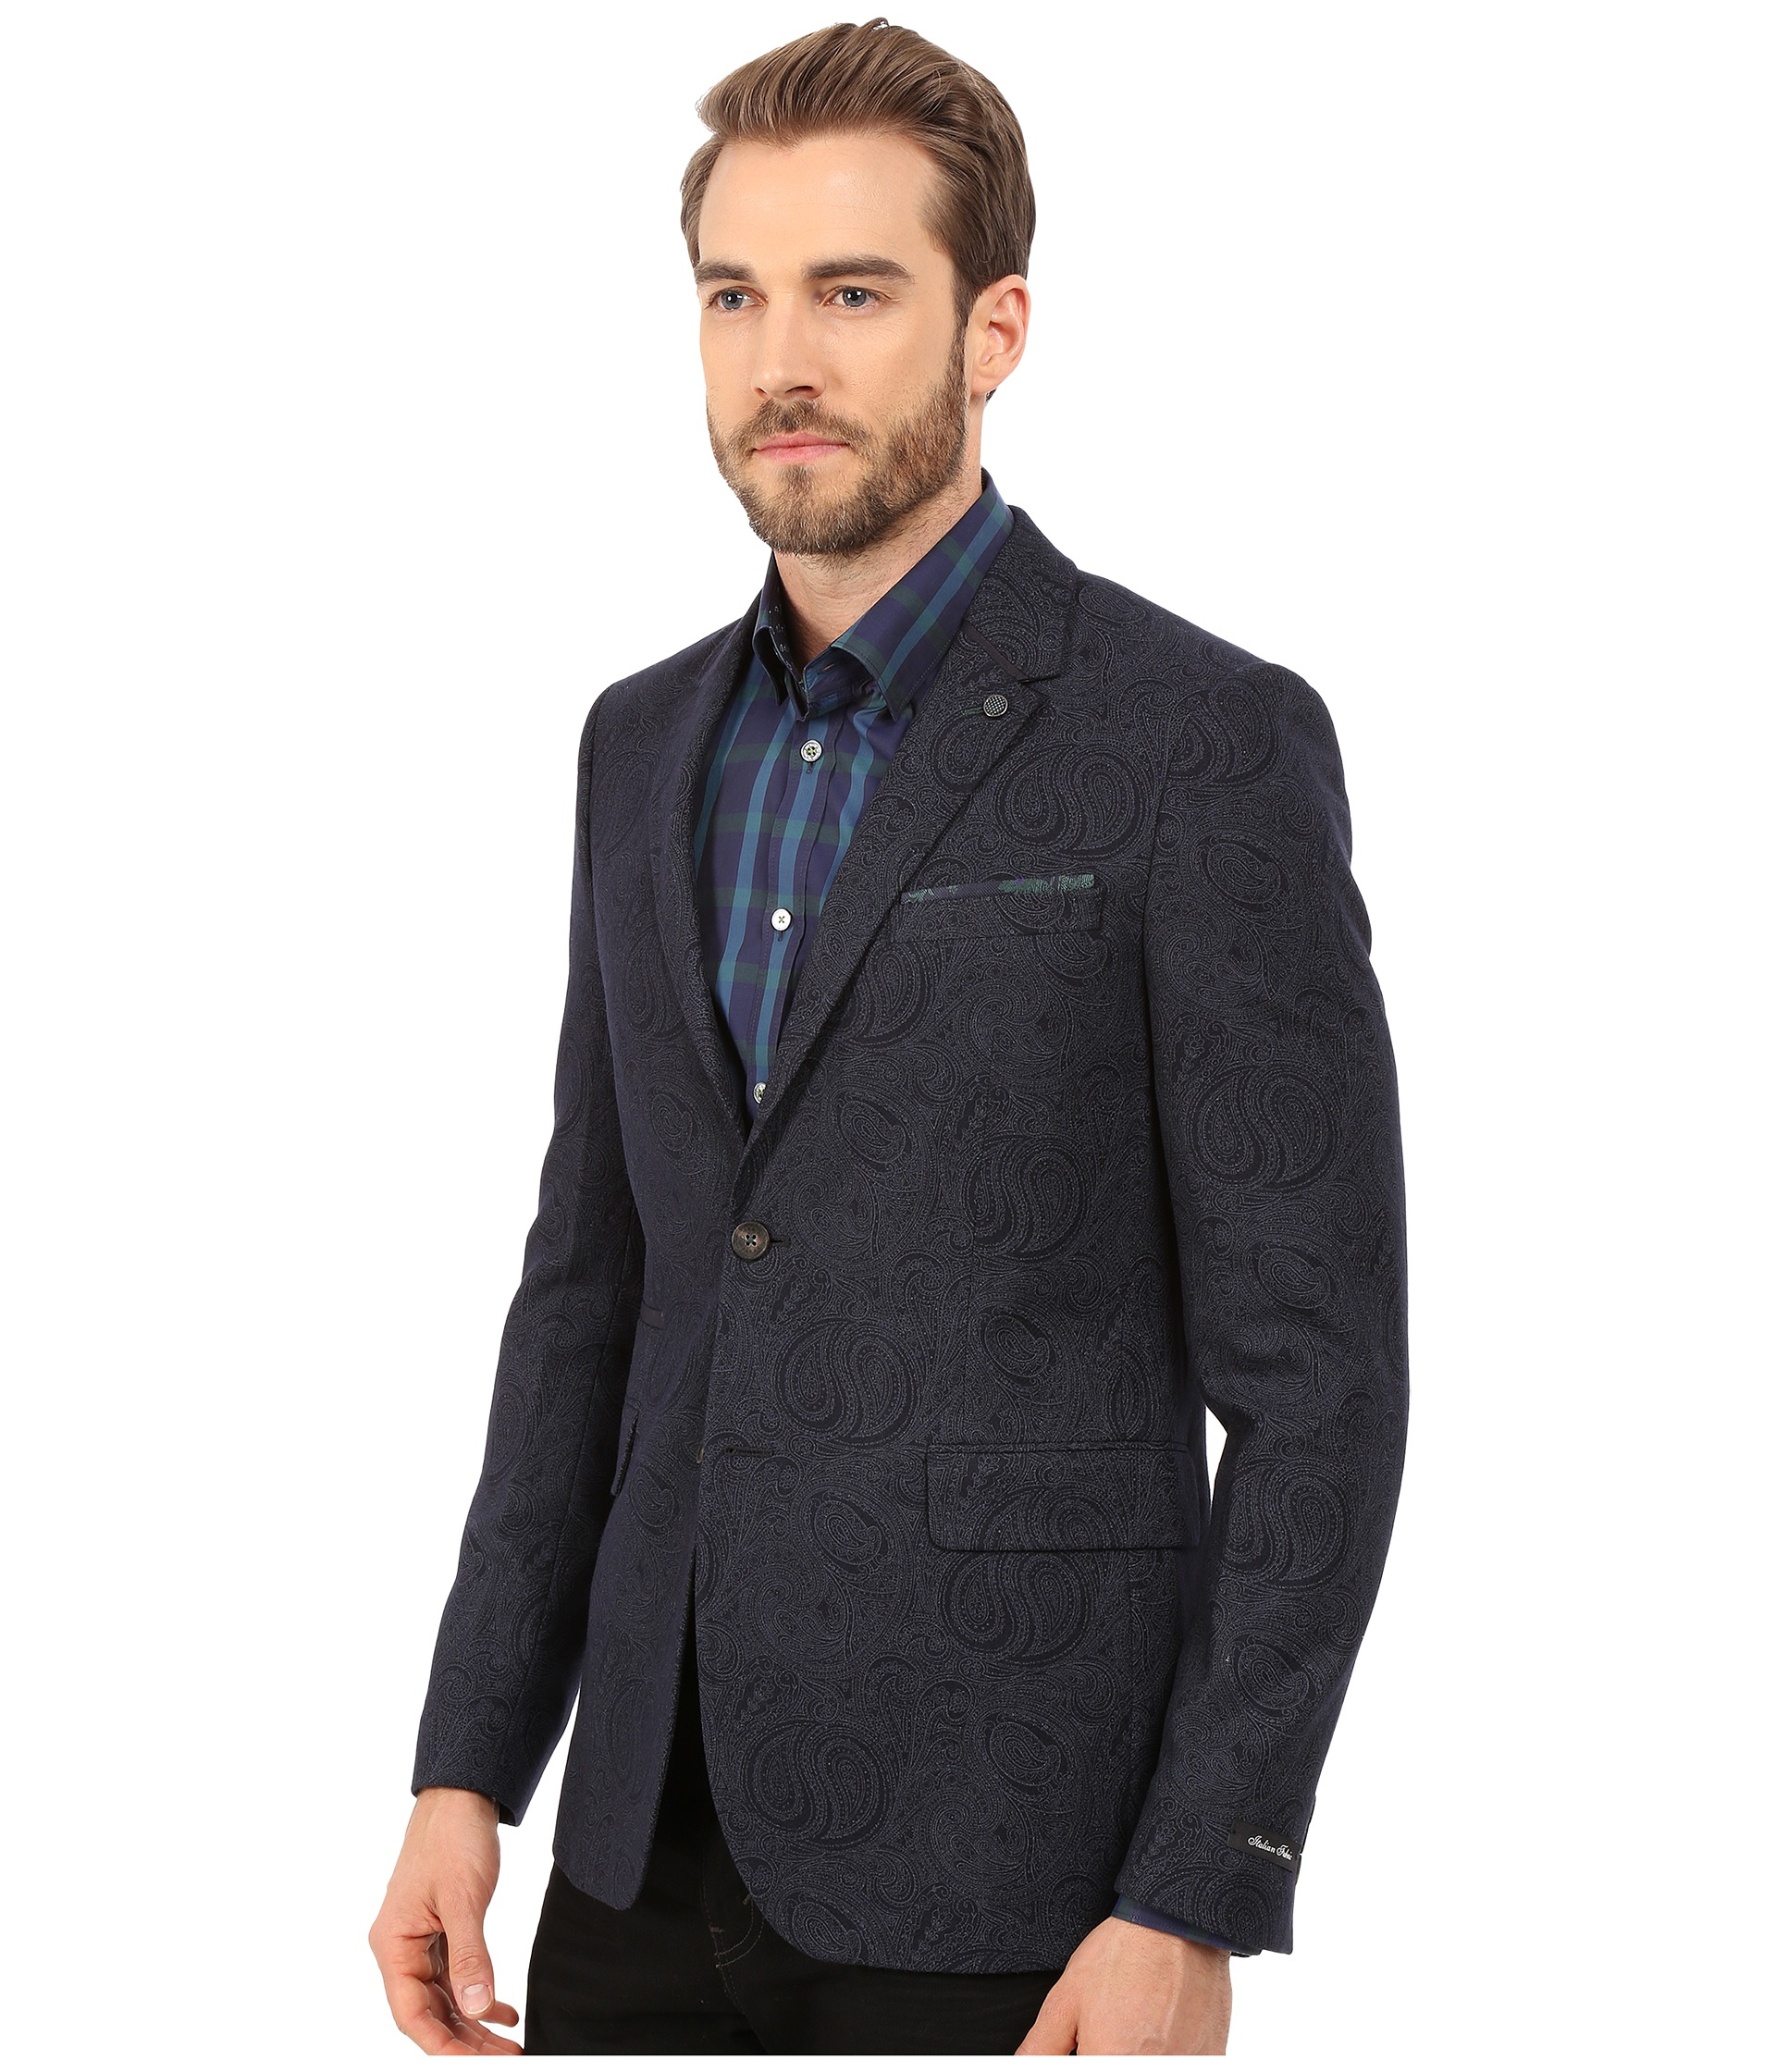 d605cfa81db280 Lyst - Ted Baker Hiko Printed Paisley Blazer in Blue for Men